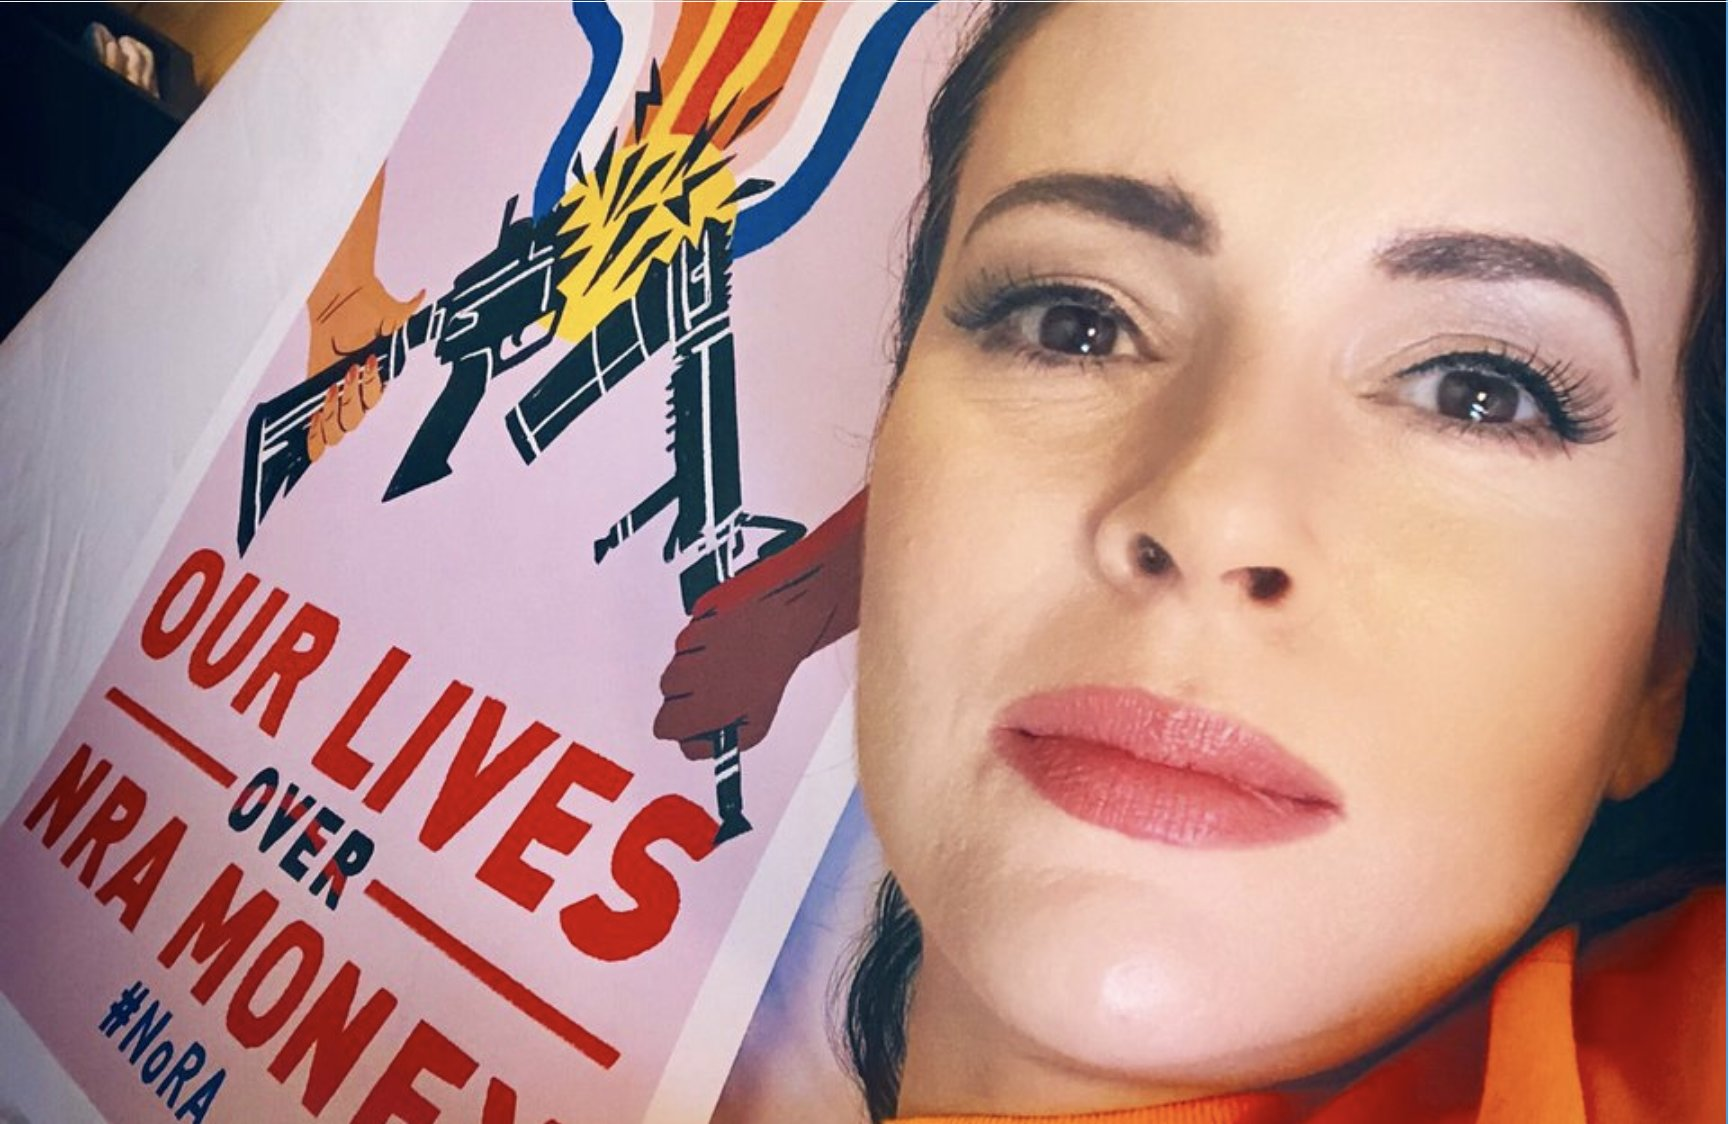 VIDEO: HOLLYWOOD ACTRESS ATTENDS ANTI-GUN PROTEST — WITH ARMED GUARDS